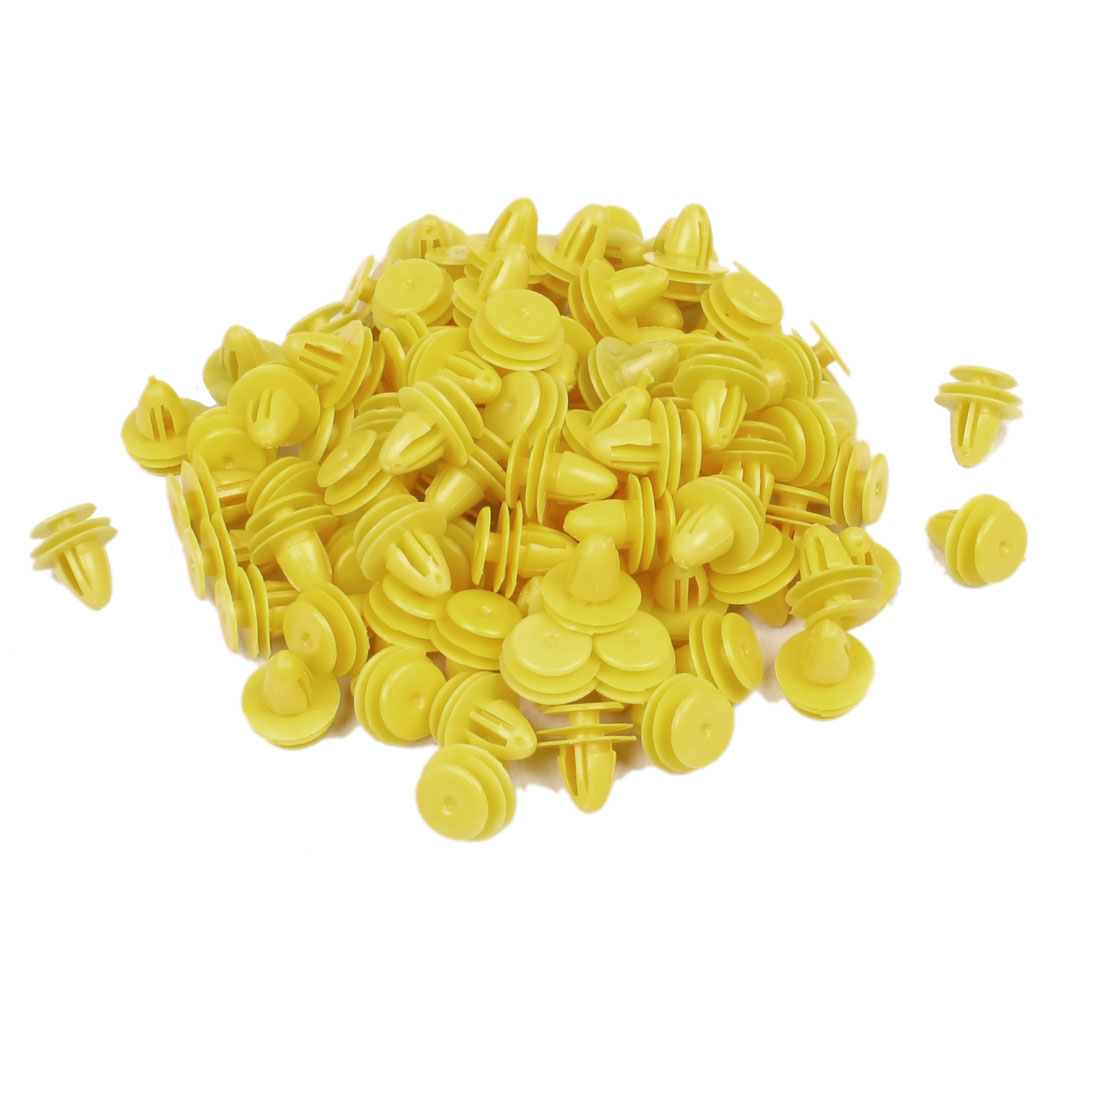 100 Pcs Auto Vechile Repair Part Interior Trim Panel Plastic Clip Yellow